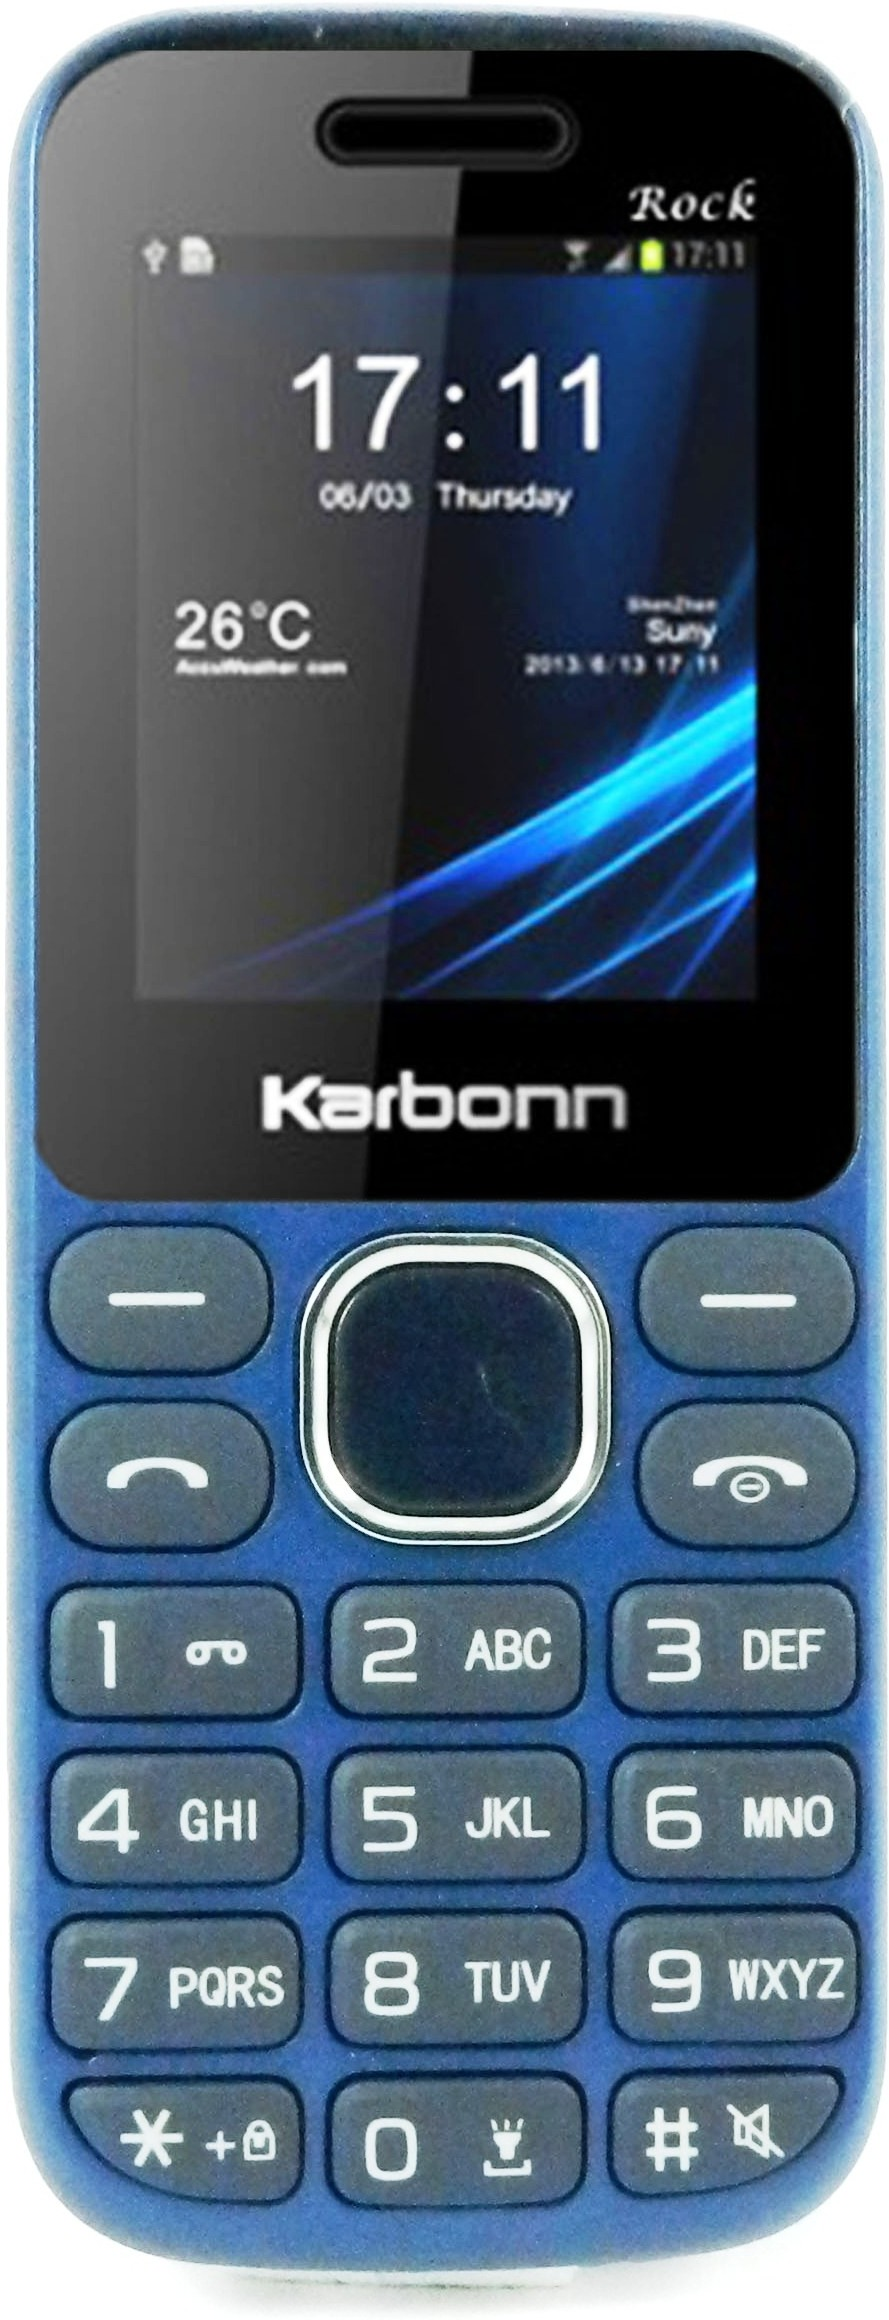 Karbonn K1 Rock(Blue and Silver)